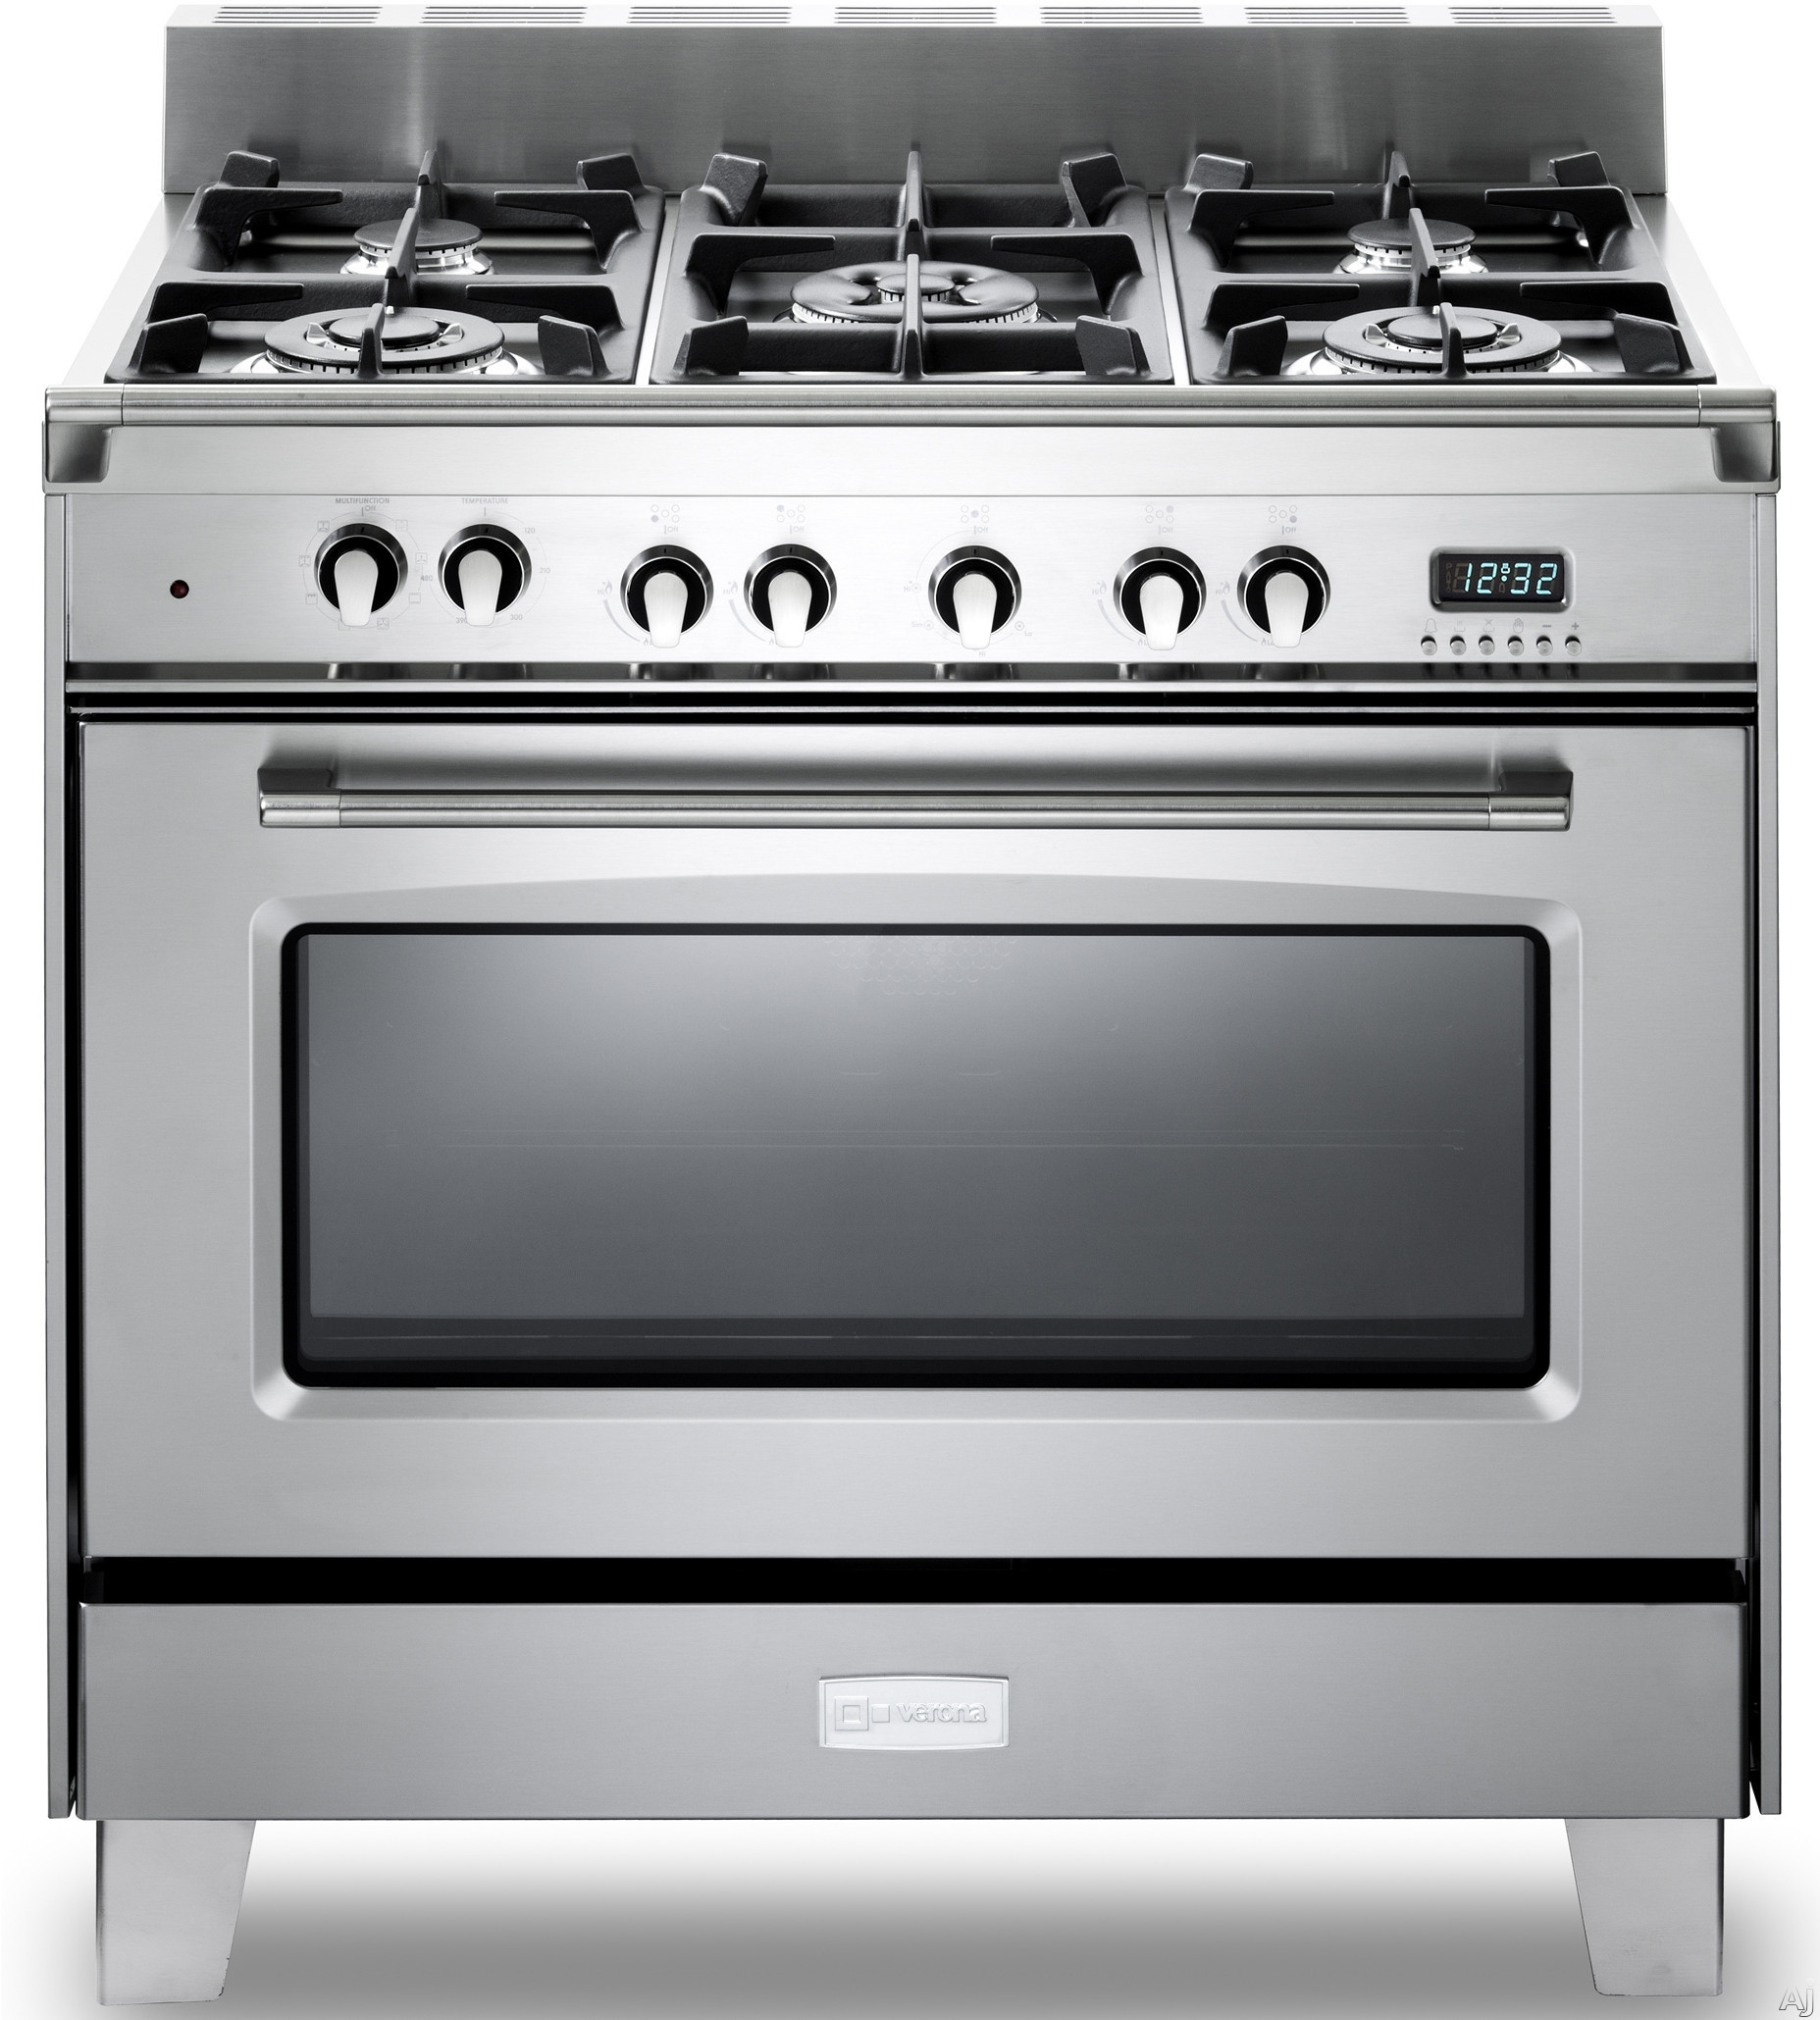 Verona Classic Series VCLFSGE365 36 Inch Pro Style Dual Fuel Range with 5 Sealed Burners 40 cu ft European Convection Oven Manual Clean Digital Clock Timer Glide Rack and Storage Drawer